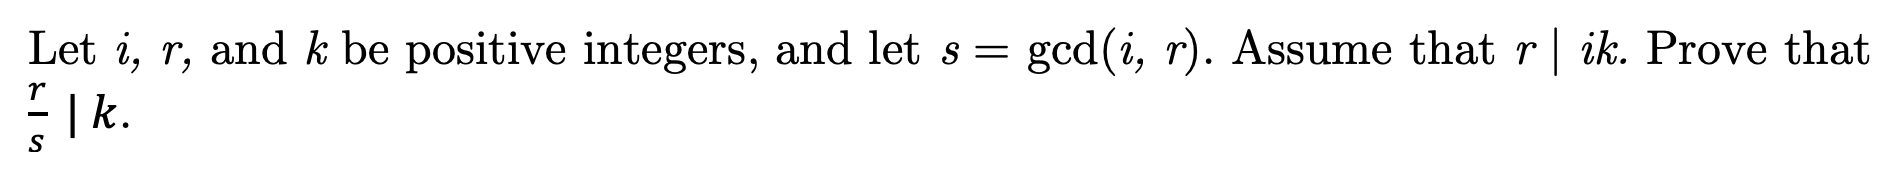 Let i, r, and k be positive integers, and let s gcd(i, r). Assume that r | ik. Prove that | k.